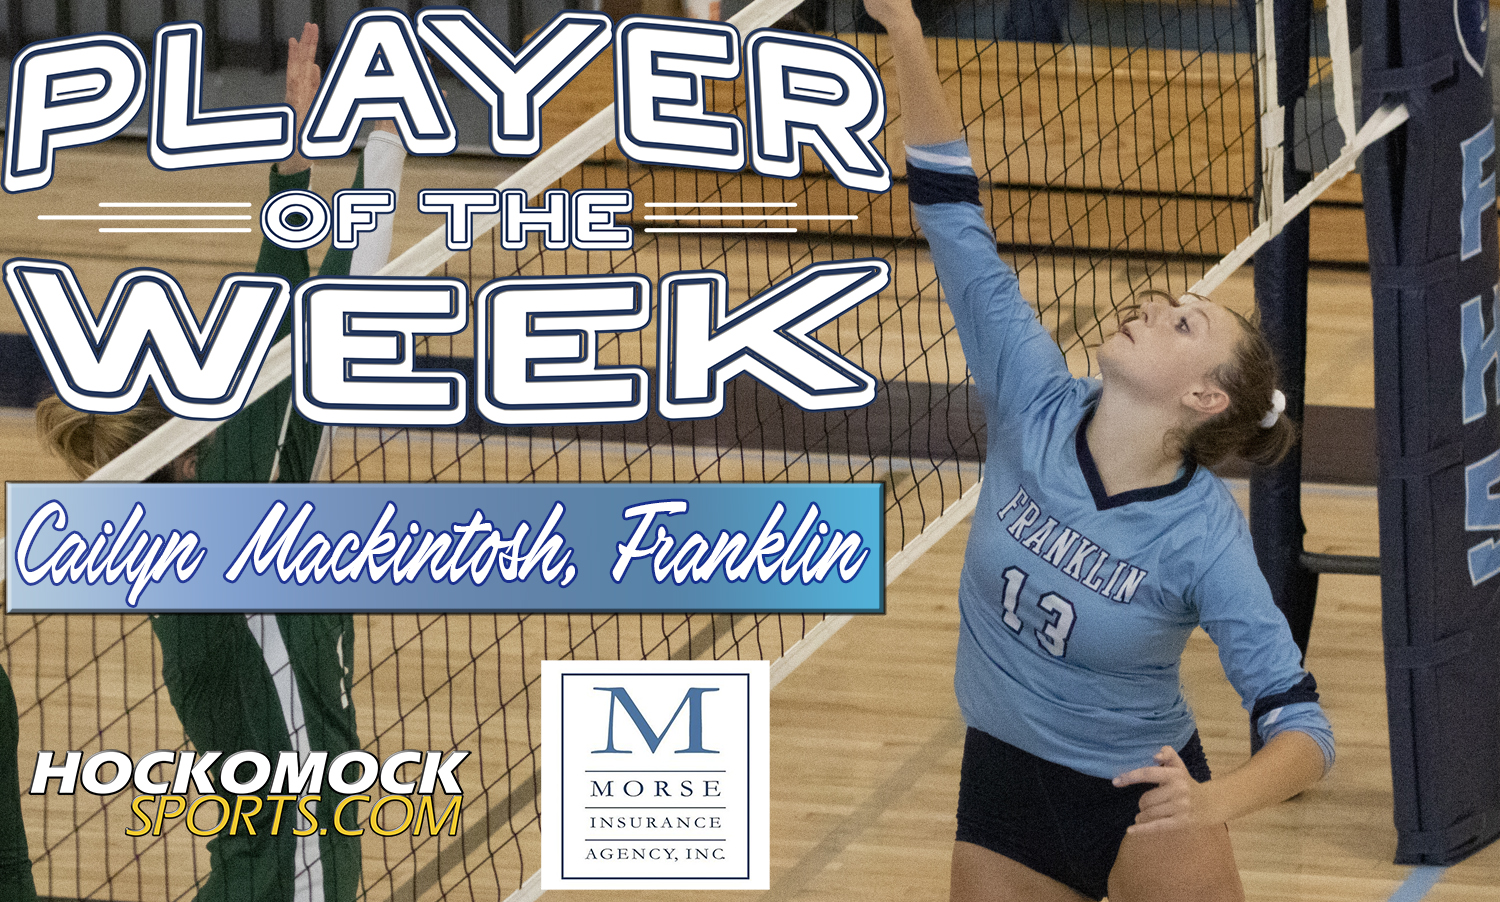 Player of the Week: Cailyn Mackintosh, Franklin Volleyball